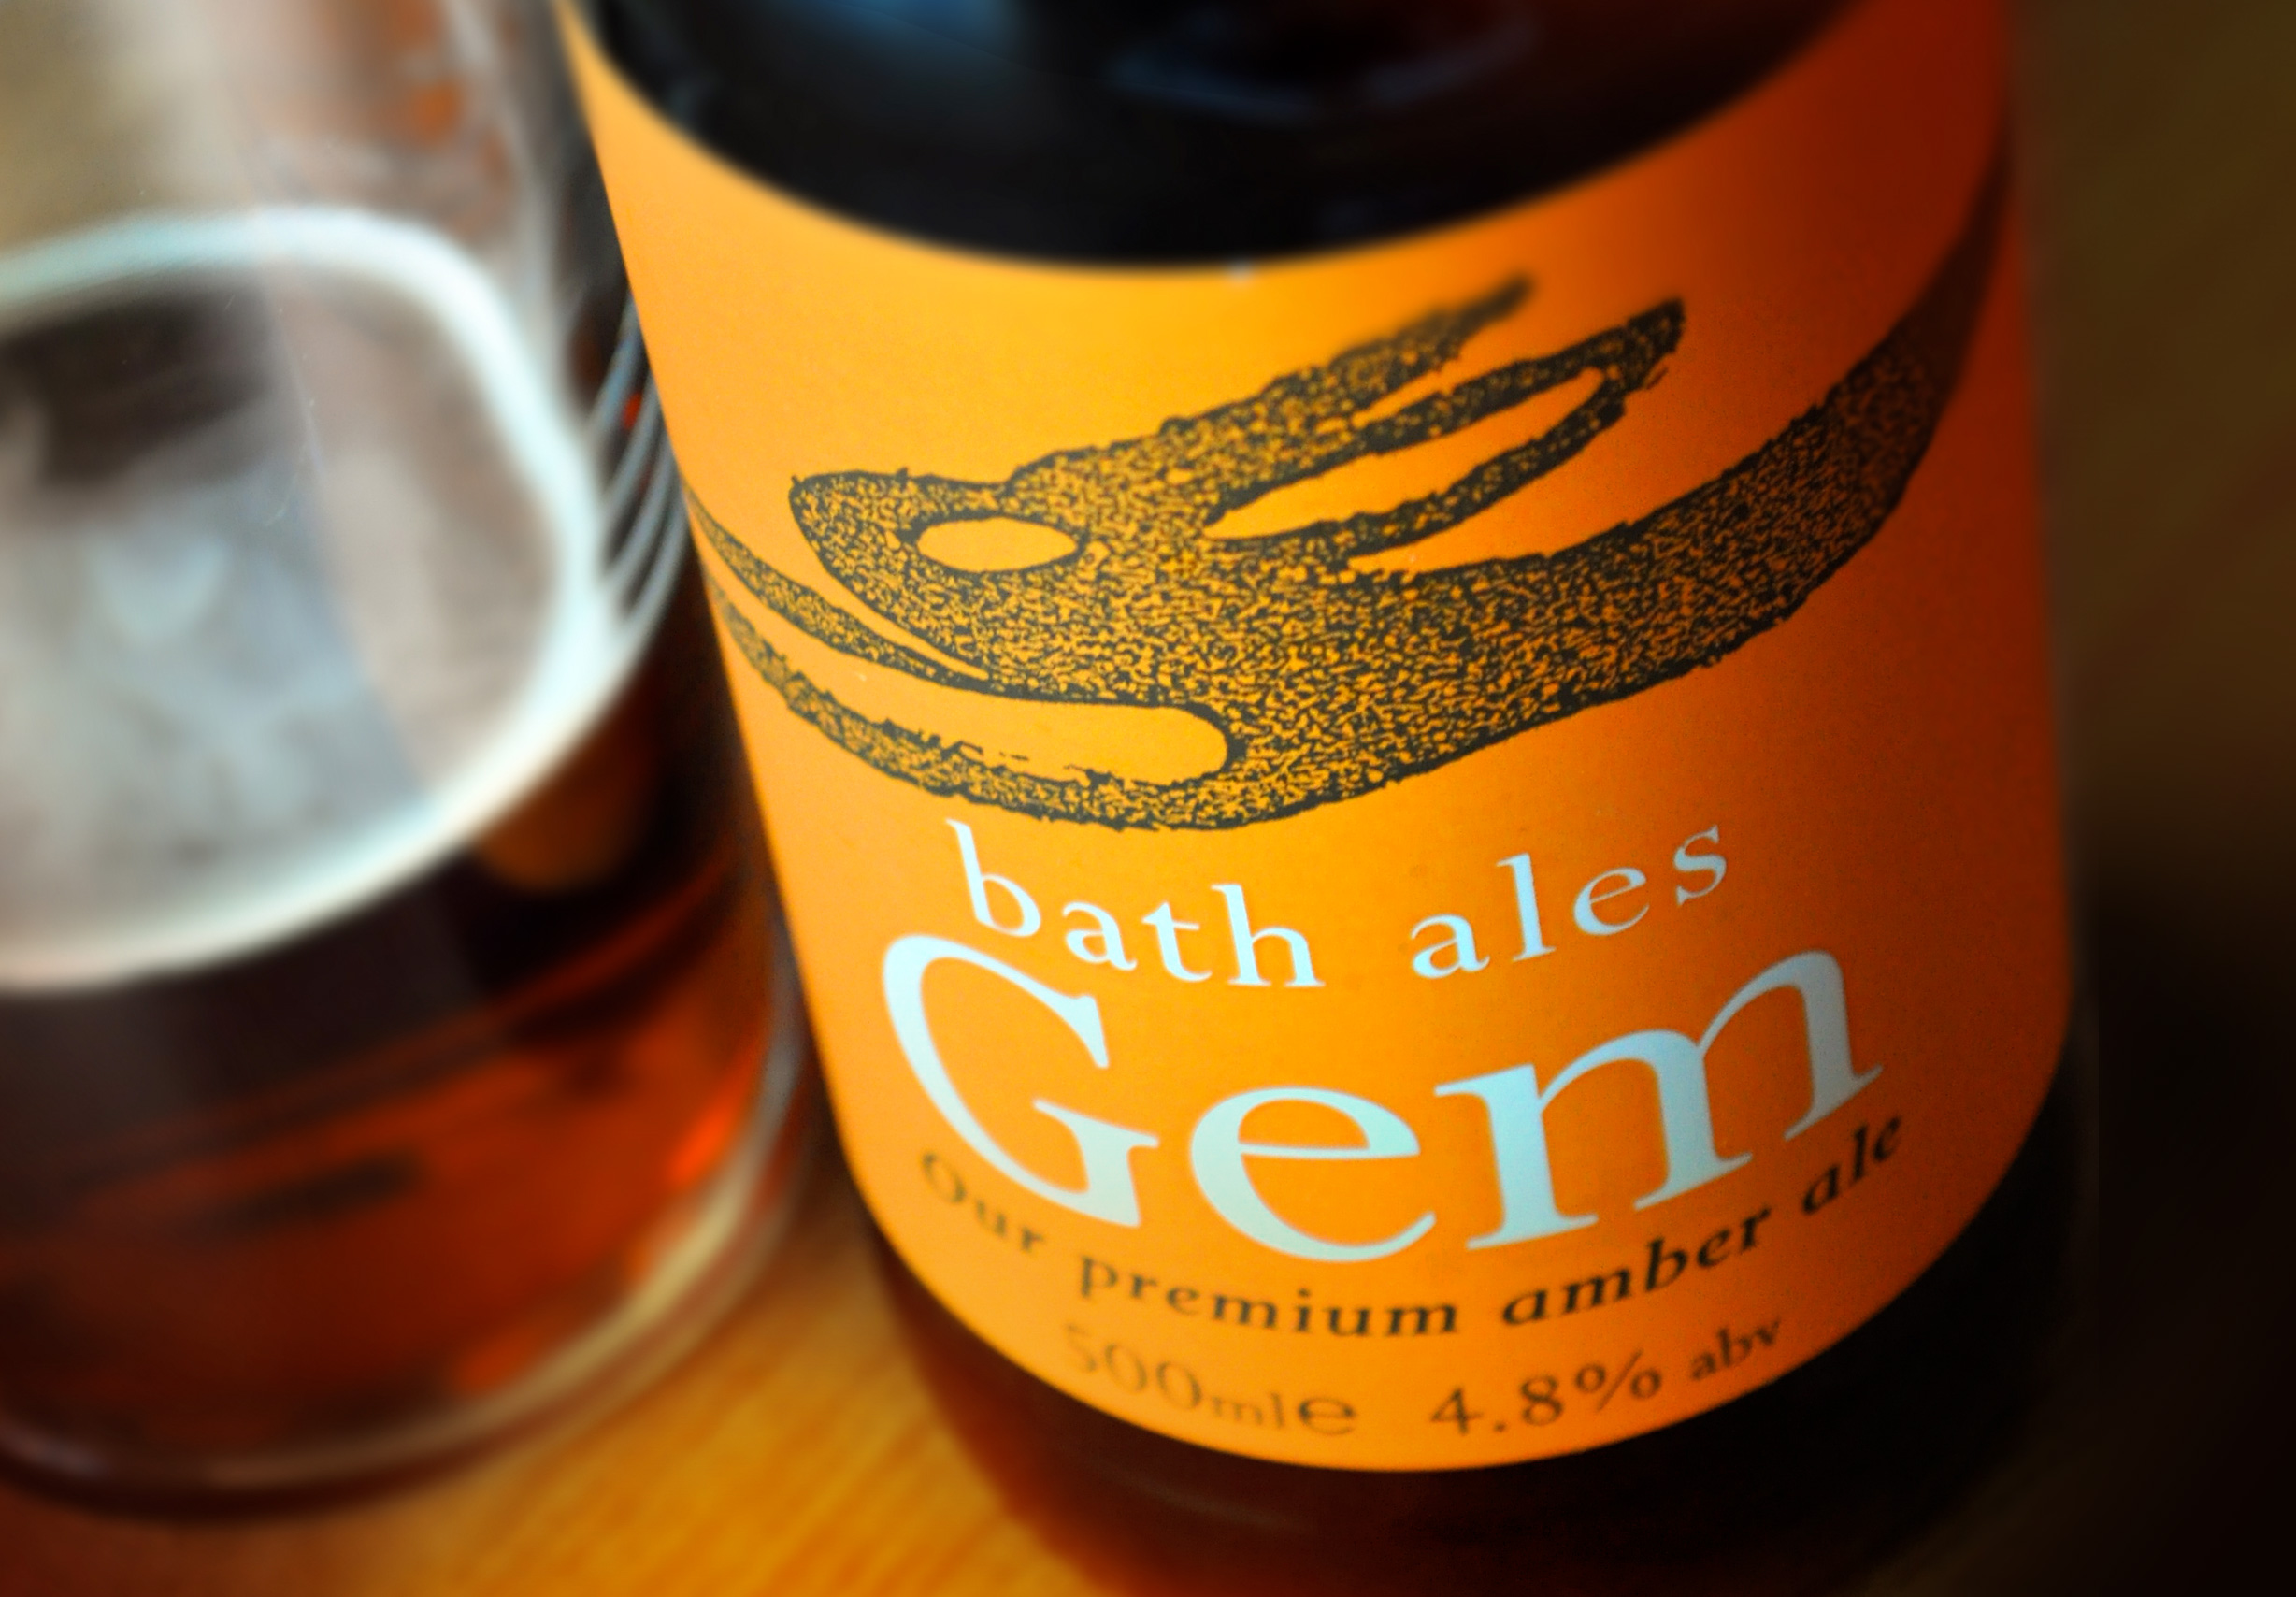 Bath Ales beer branding and packaging